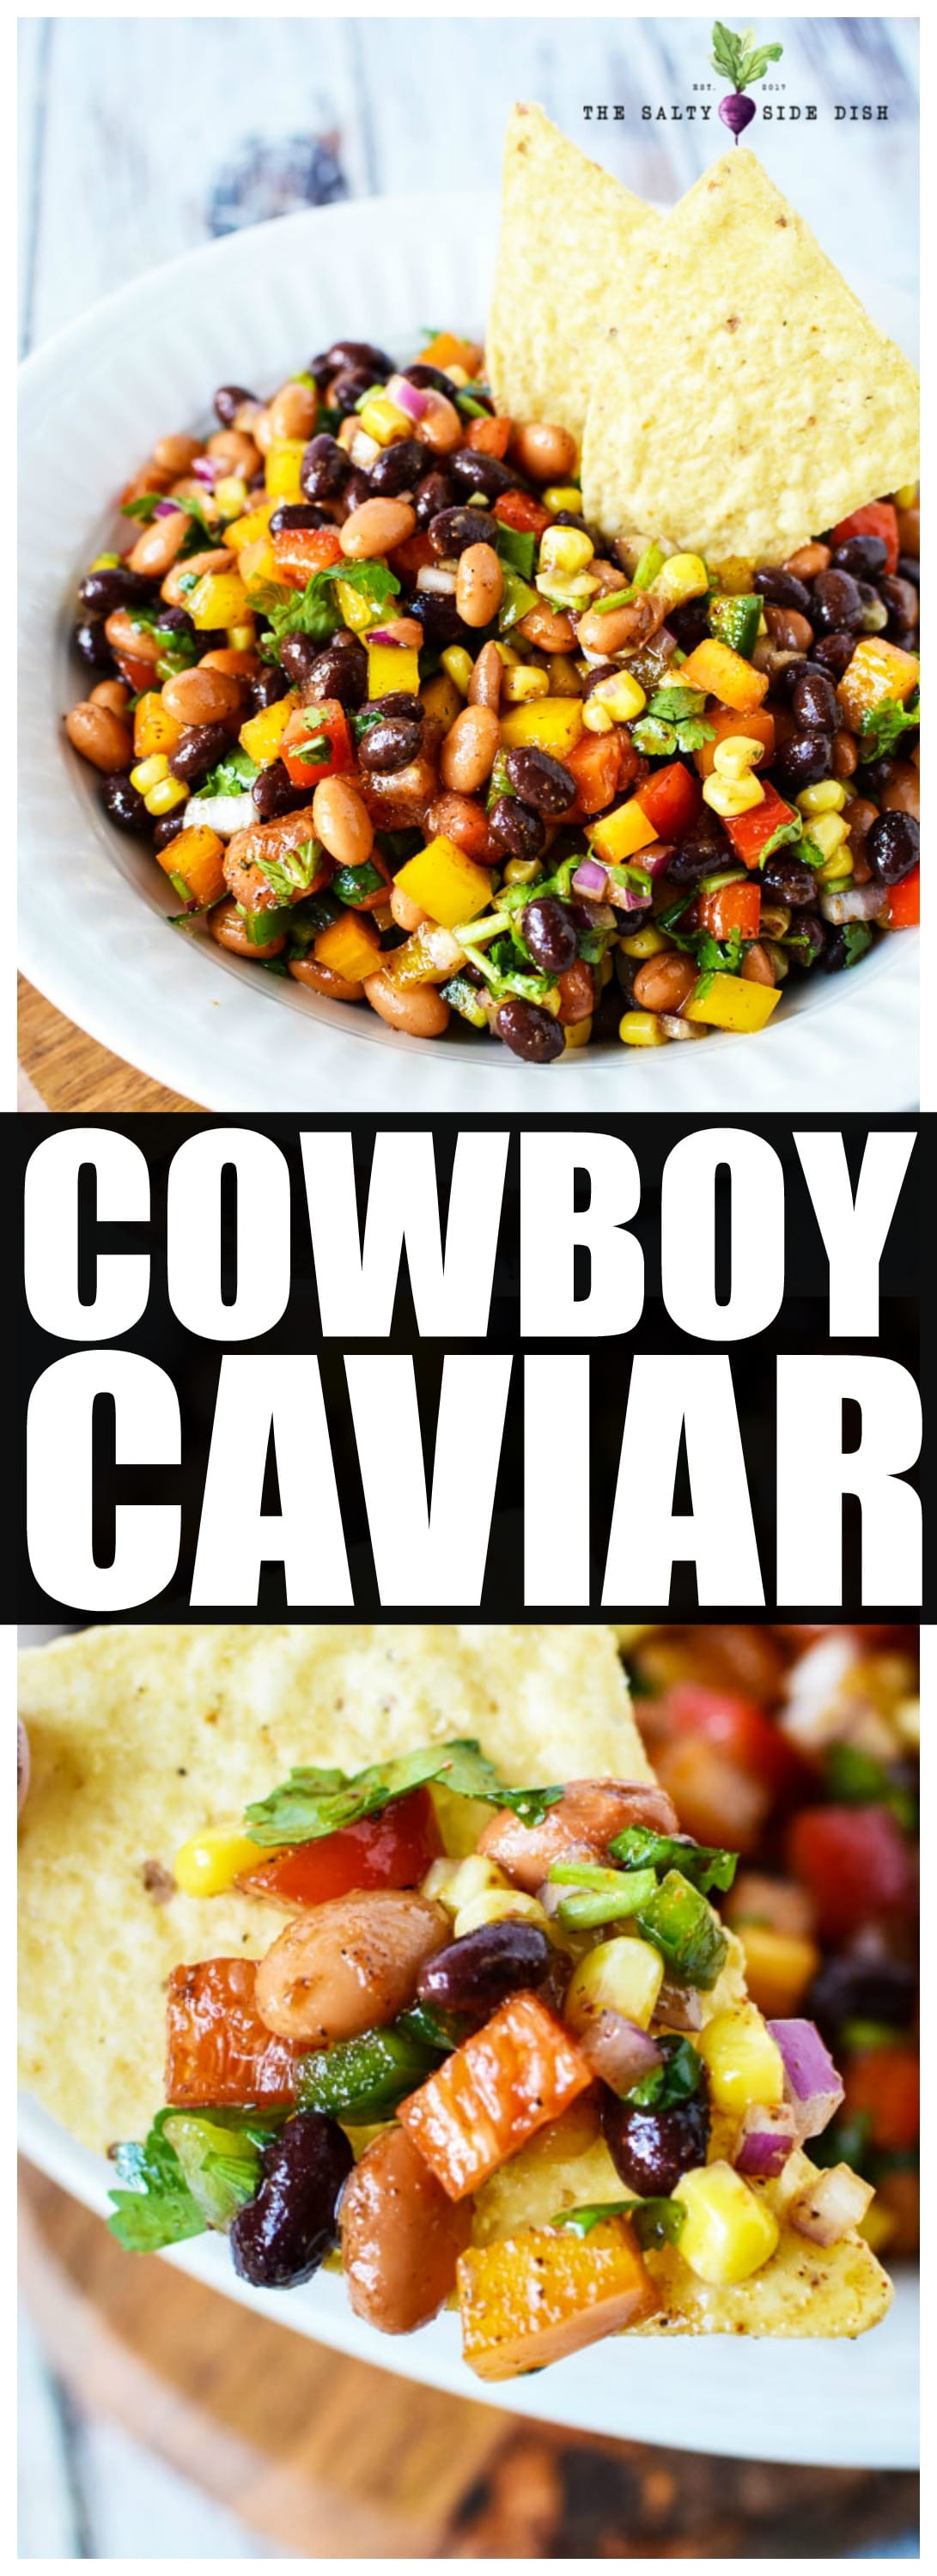 Cowboy Caviar | Texas Caviar Dip Recipe full of veggies and beans, a hearty. spicy, and EASY dip everyone loves #dip #caviar #appetizer #partyplatter #dips #recipes